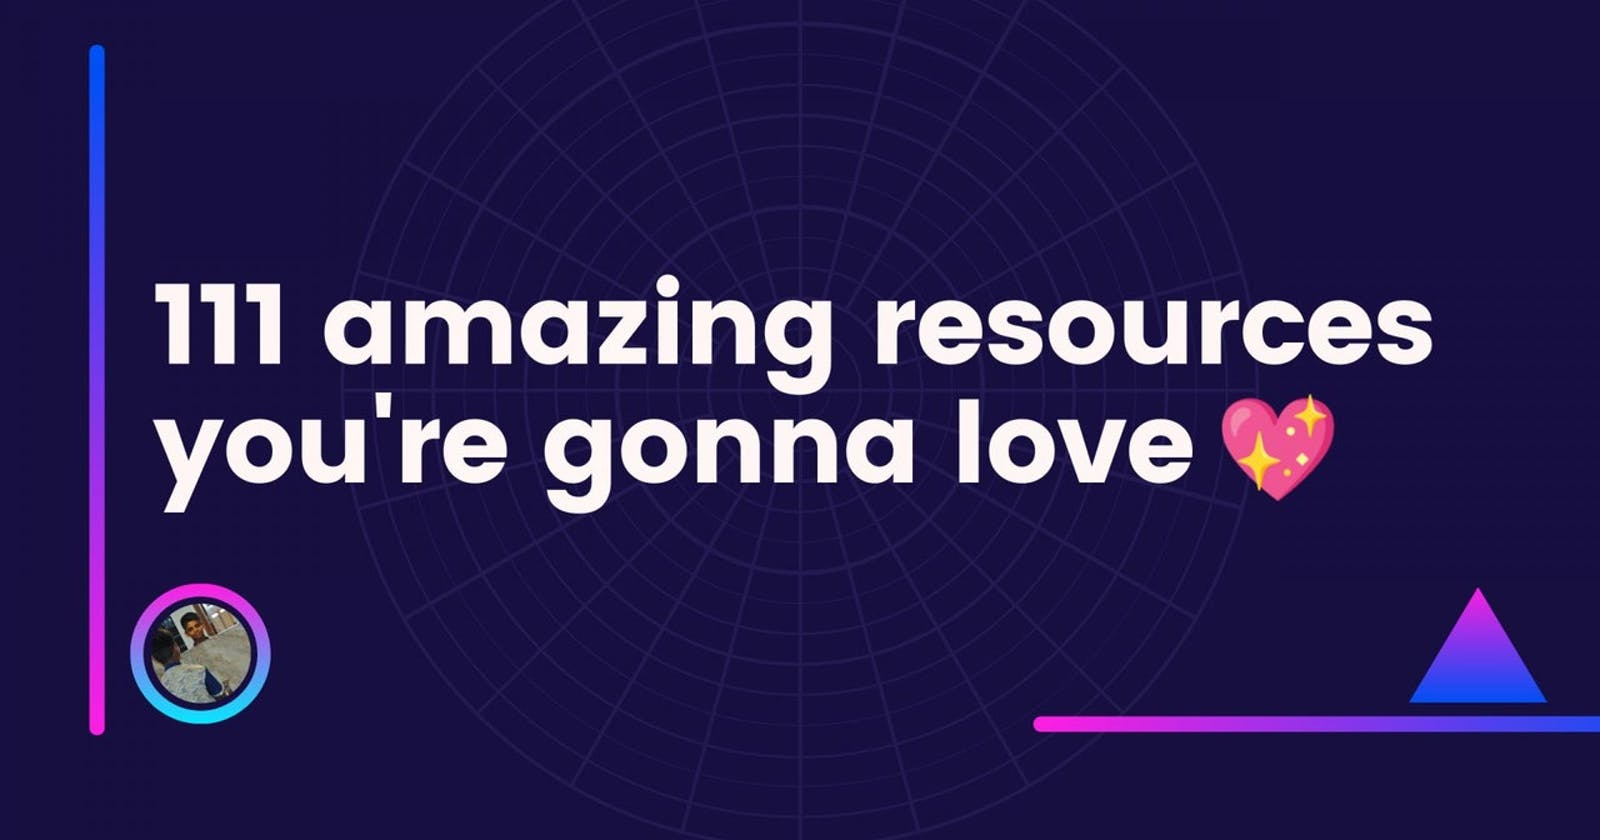 111 amazing resources you're gonna love 💖